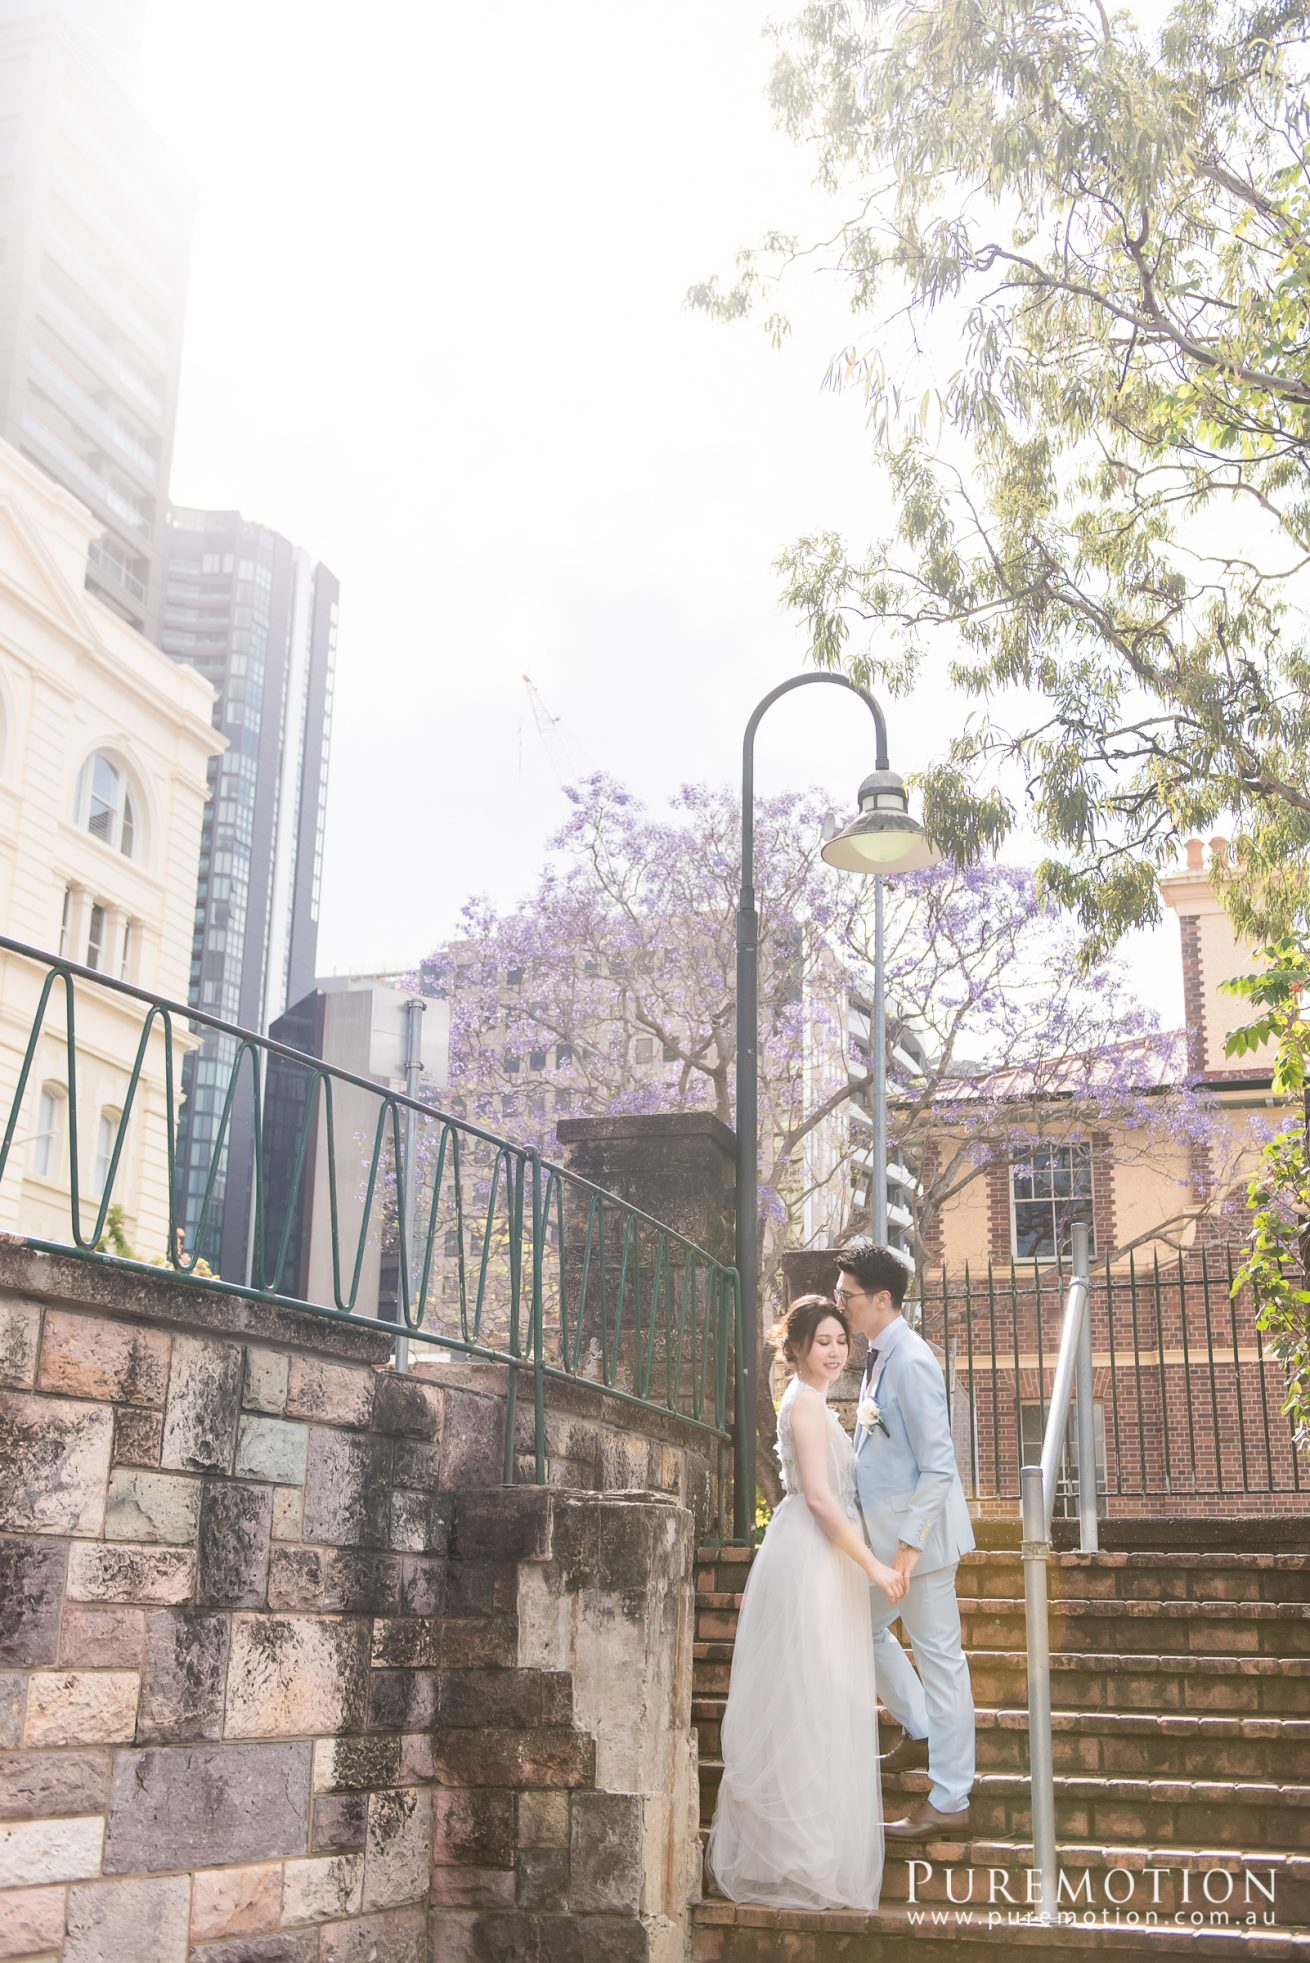 190928 Puremotion Wedding Photography Brisbane Alex Huang AnaDon-0038